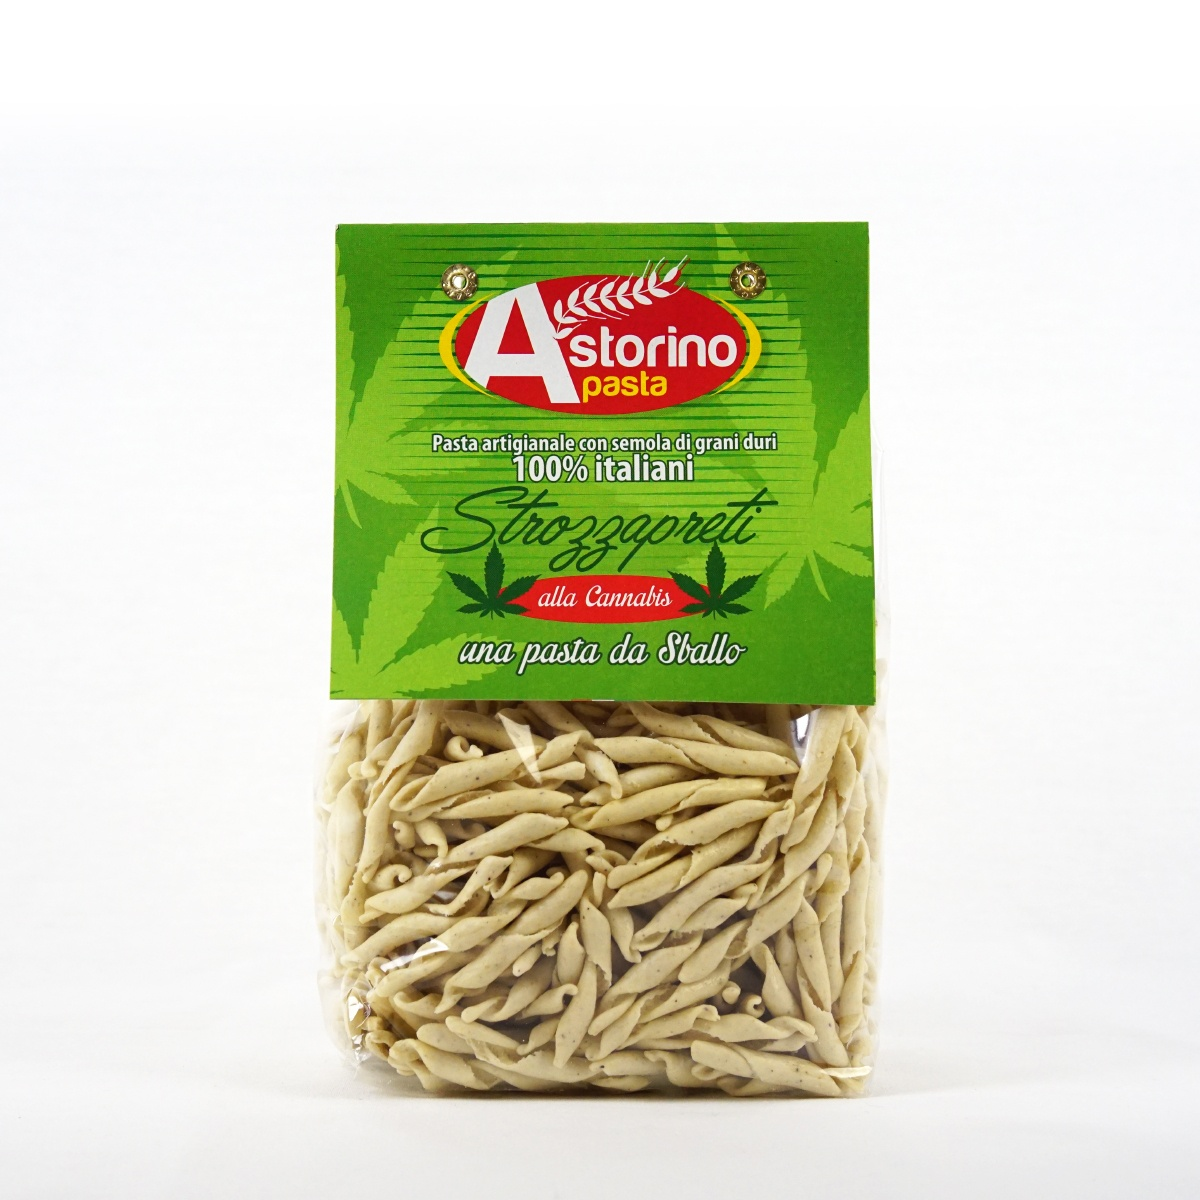 Astorino Pasta®